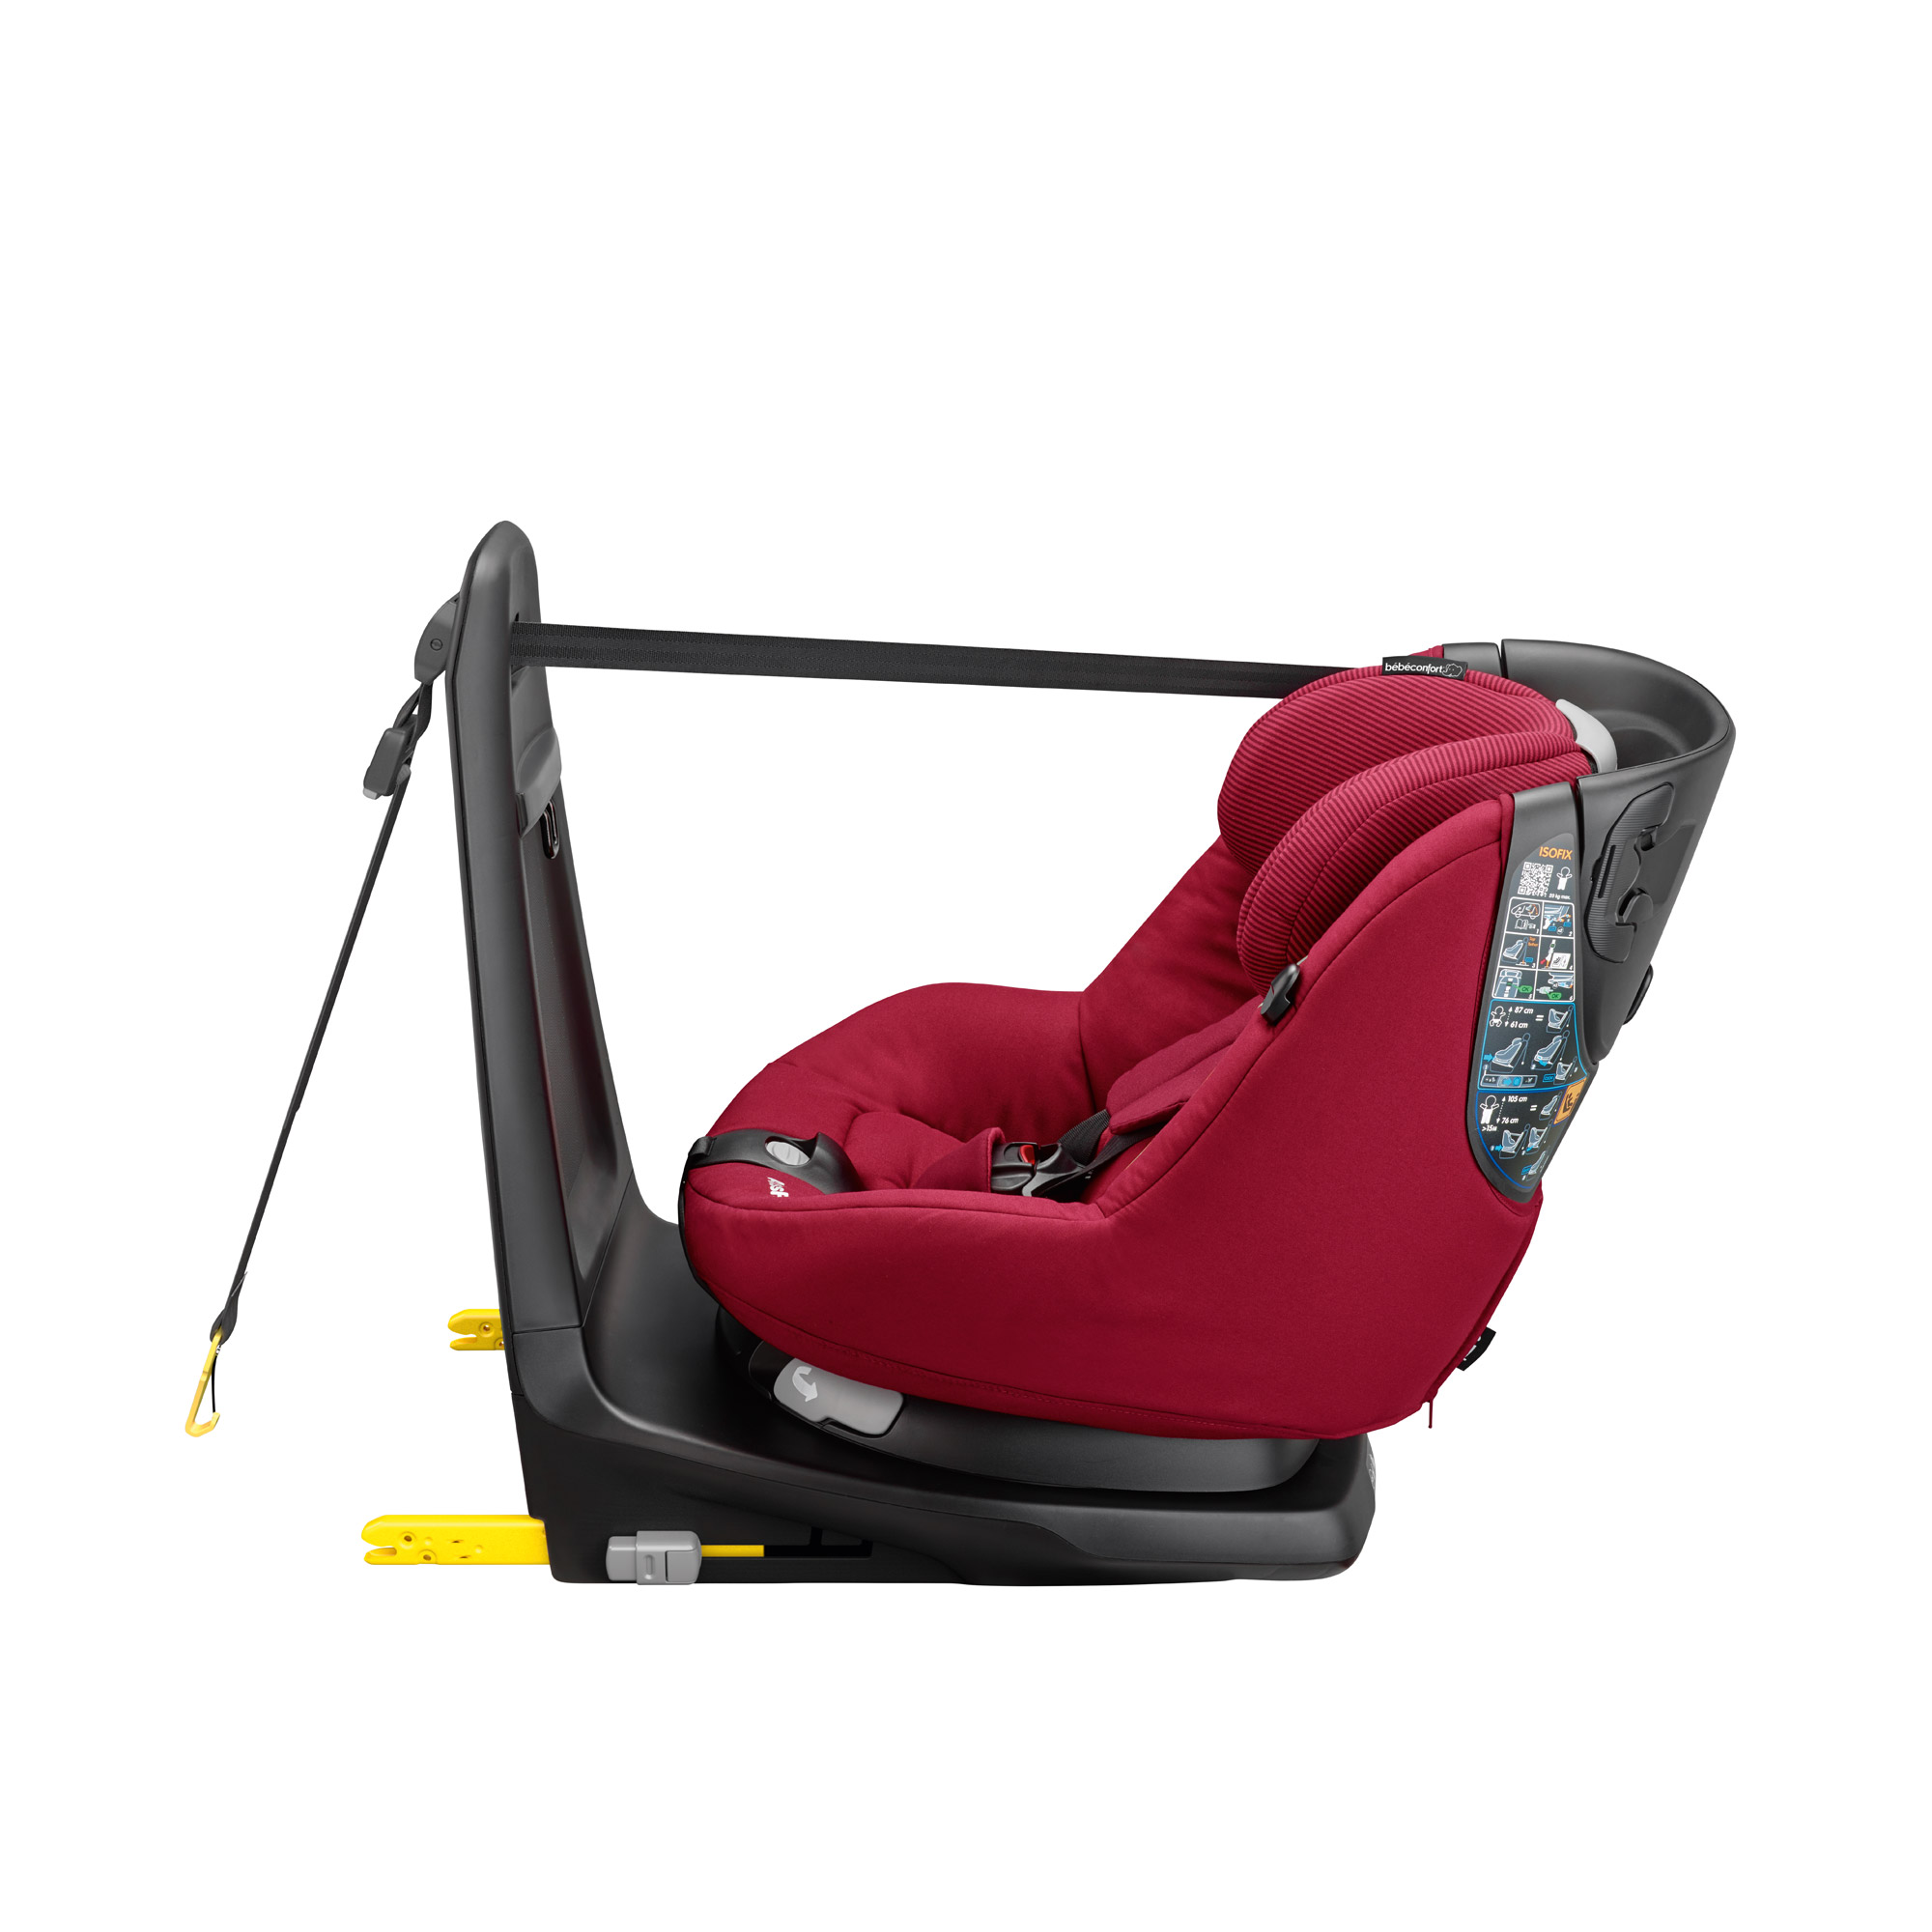 AxissFix Plus i-Size Frequency Black  de Bébé Confort